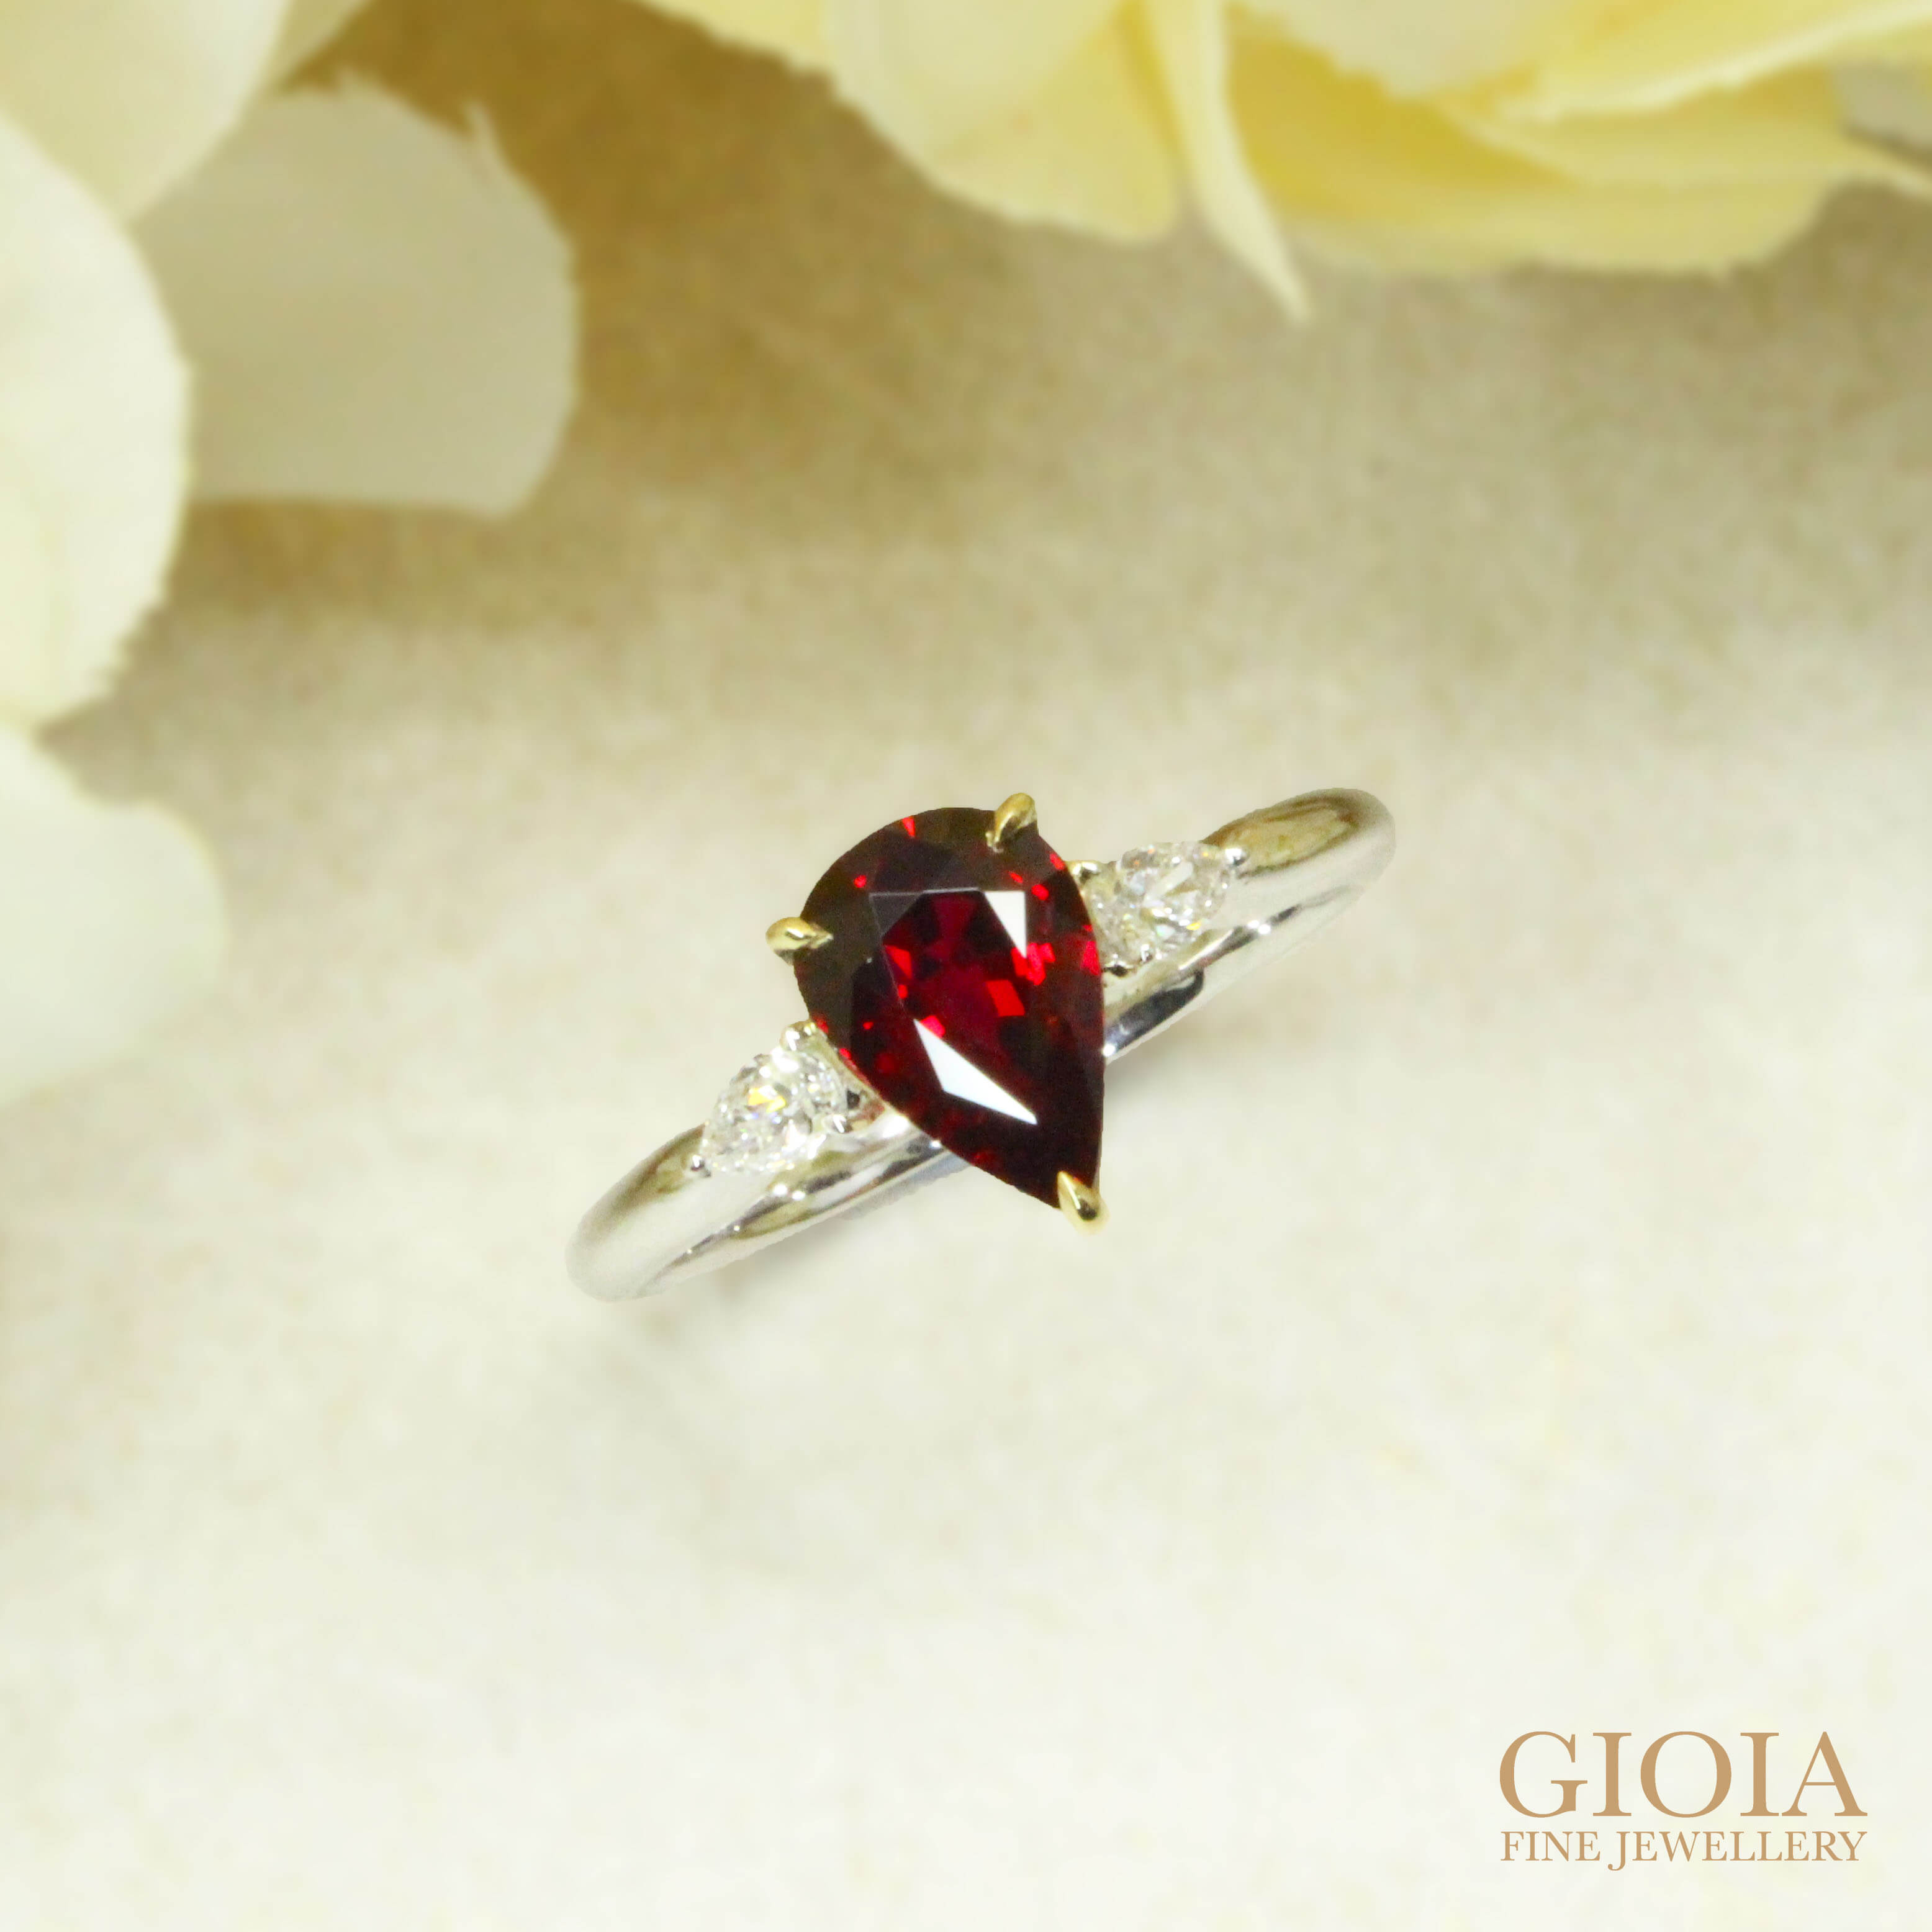 Unheated Pigeon Blood Ruby Proposal Ring - Customised ruby gemstone ring for engagement ring for proposal | Local Singapore Bespoke Jeweller in wedding Jewellery